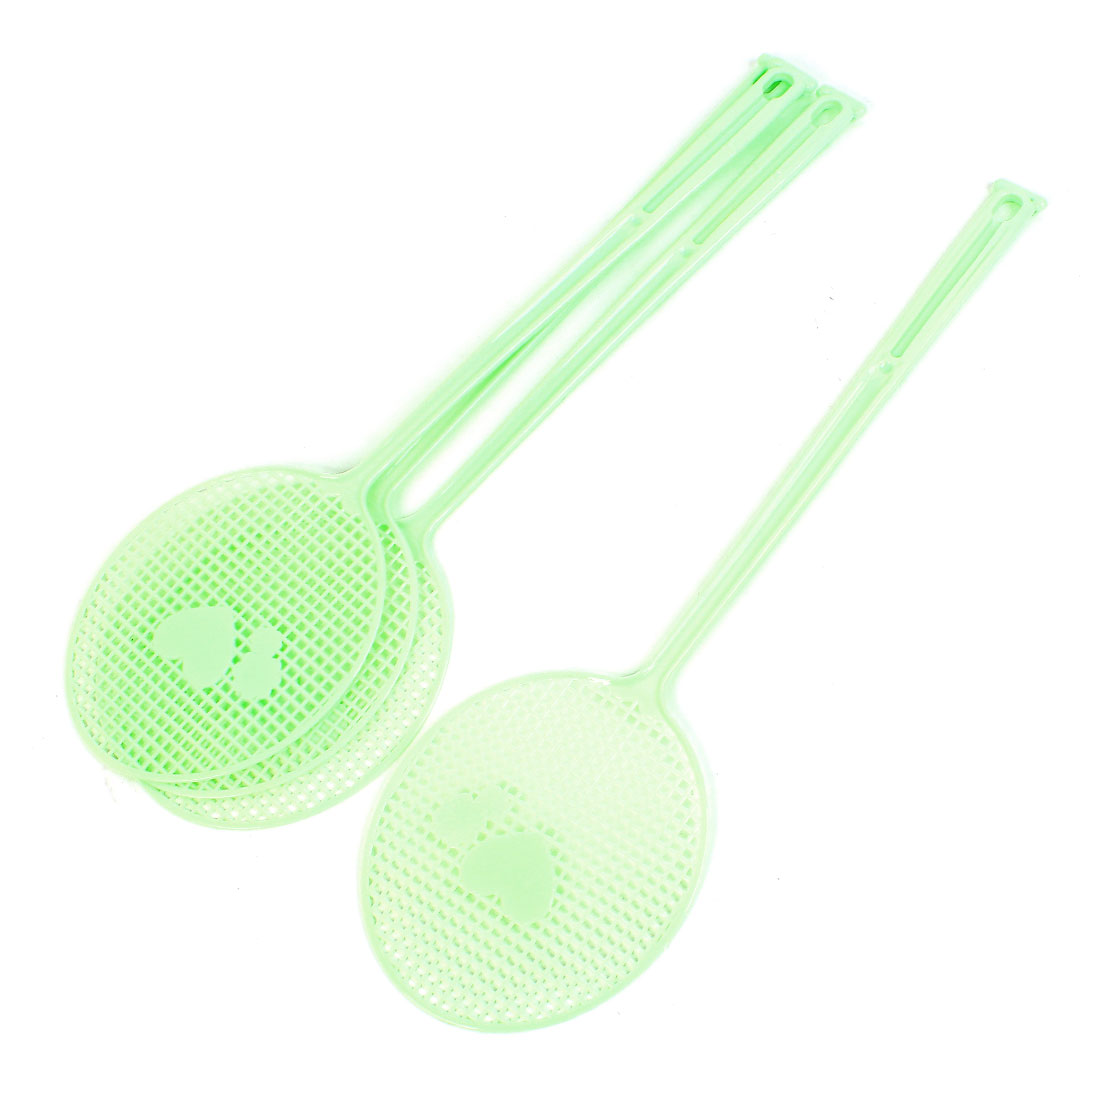 4 Pcs Light Green Plastic Heart Flower Pattern Mosquito Fly Swatter